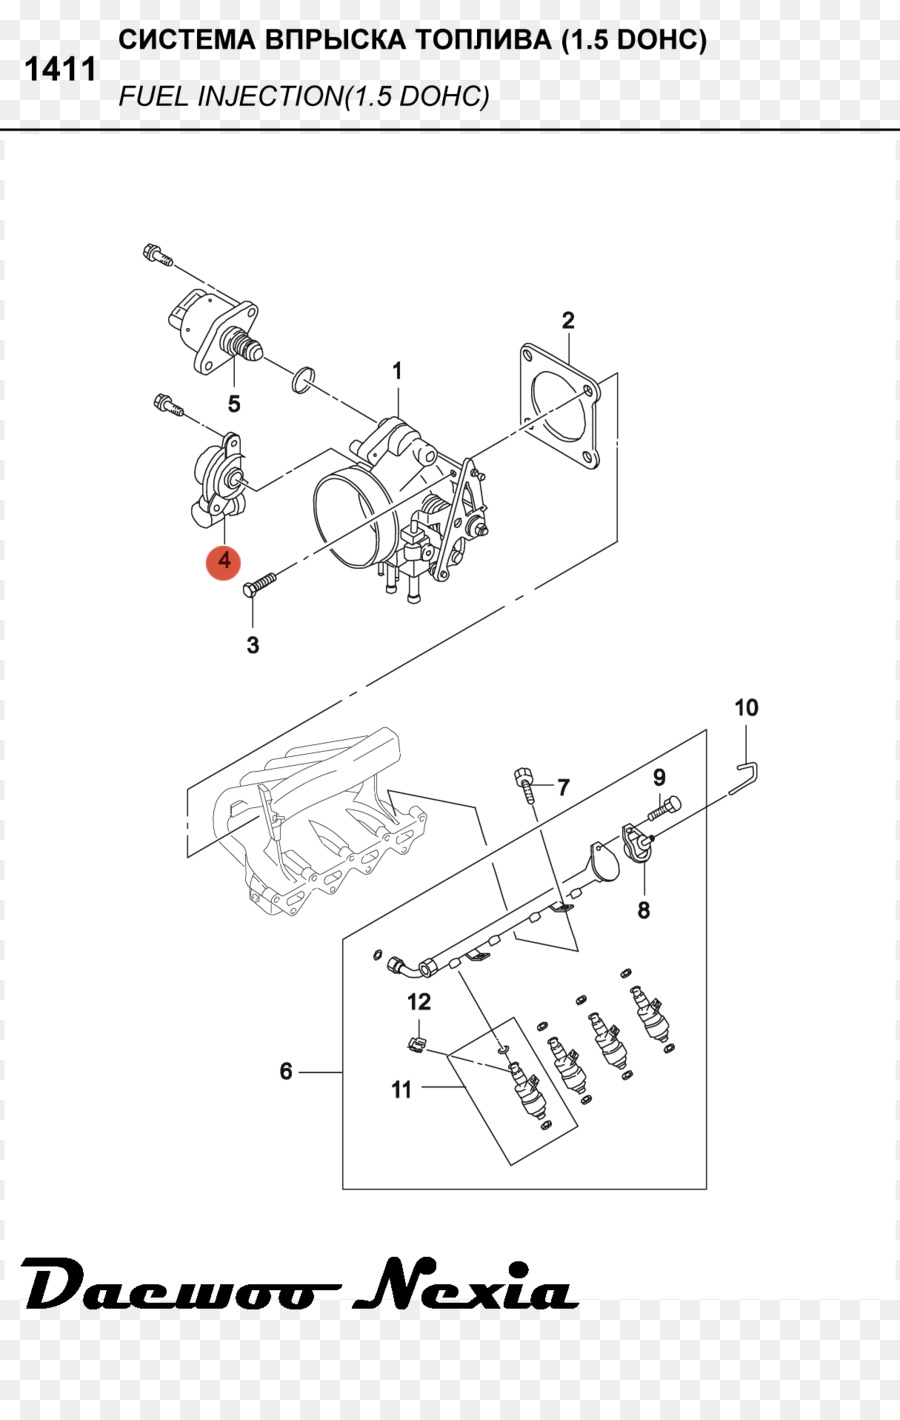 [DIAGRAM] Daewoo Lacetti Stereo Wiring Diagram FULL